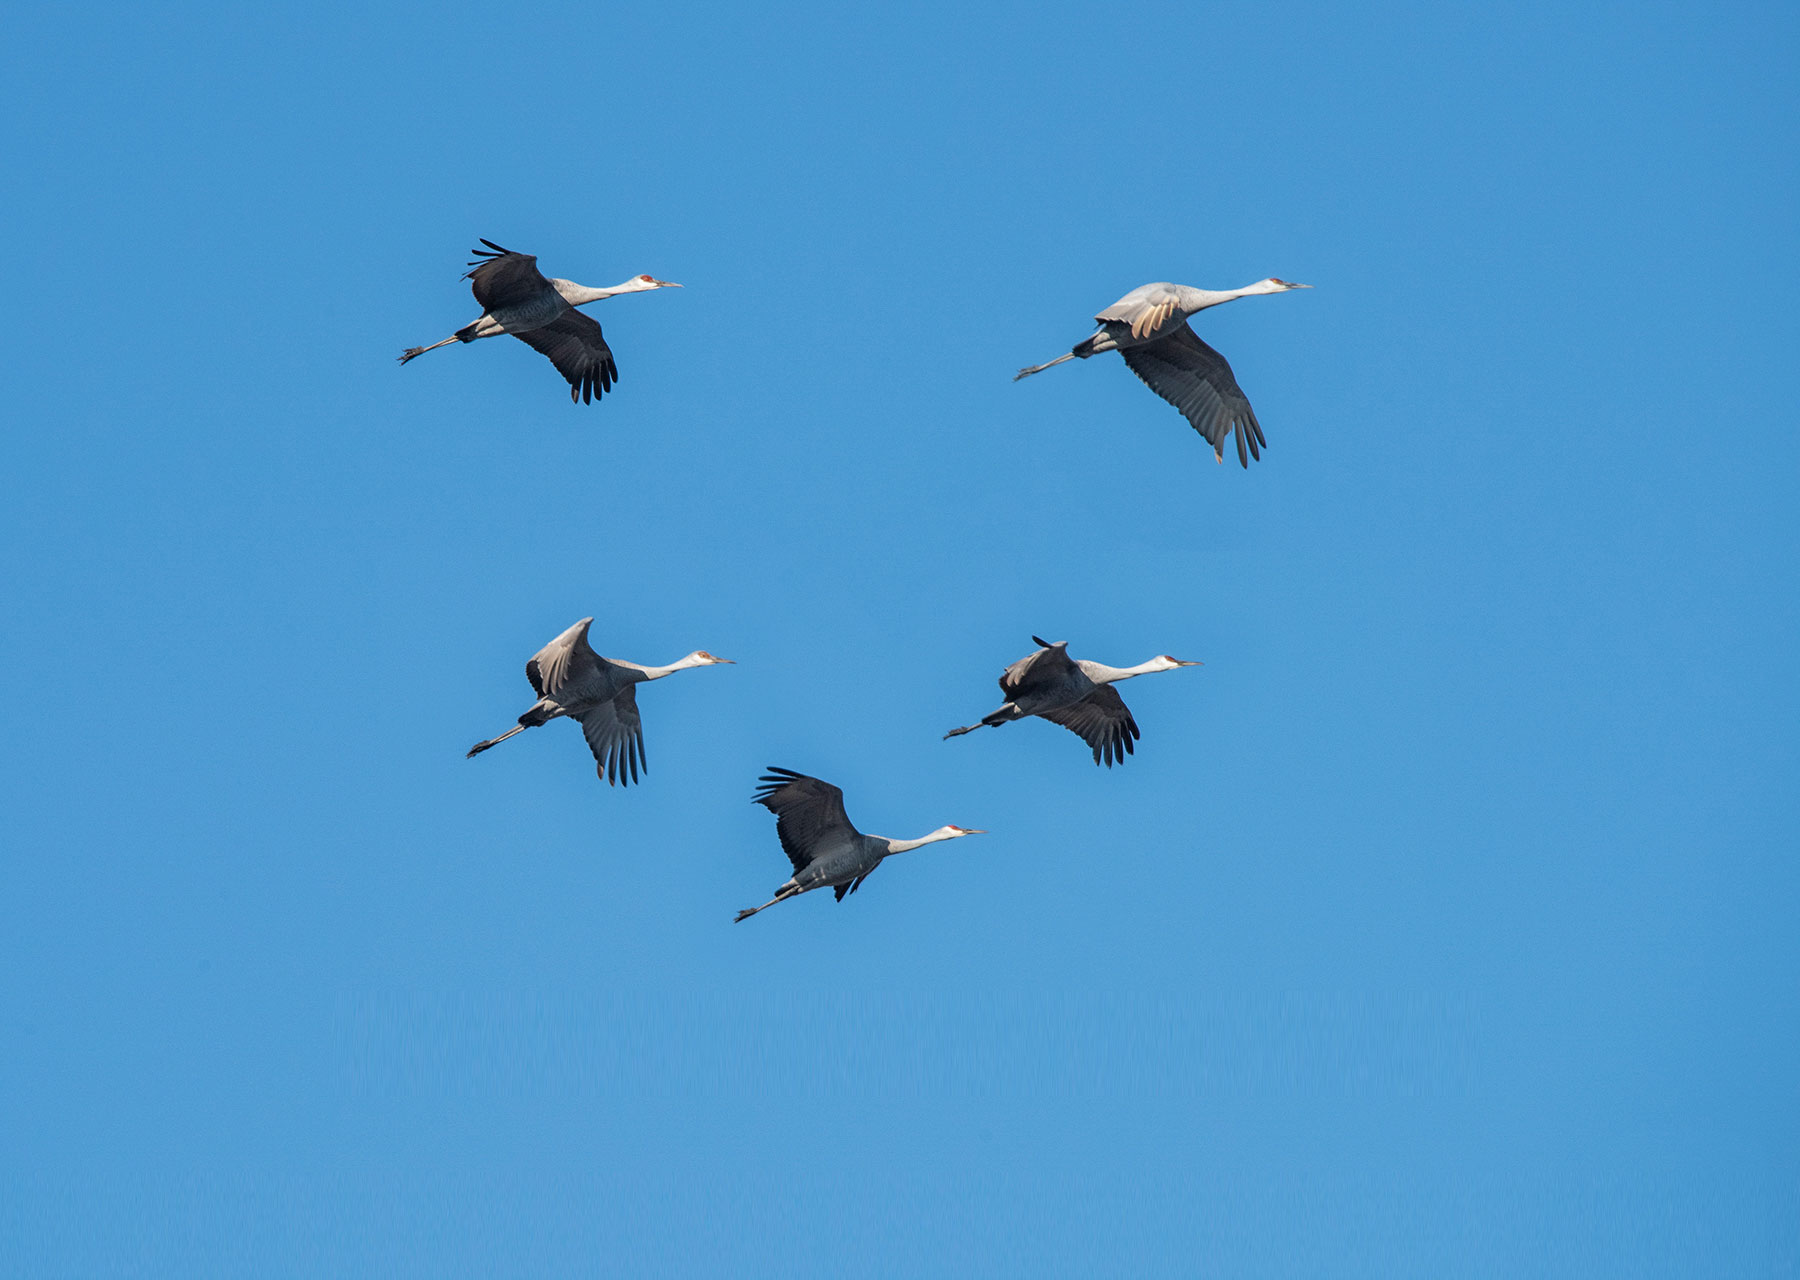 5 Sandhills Flying